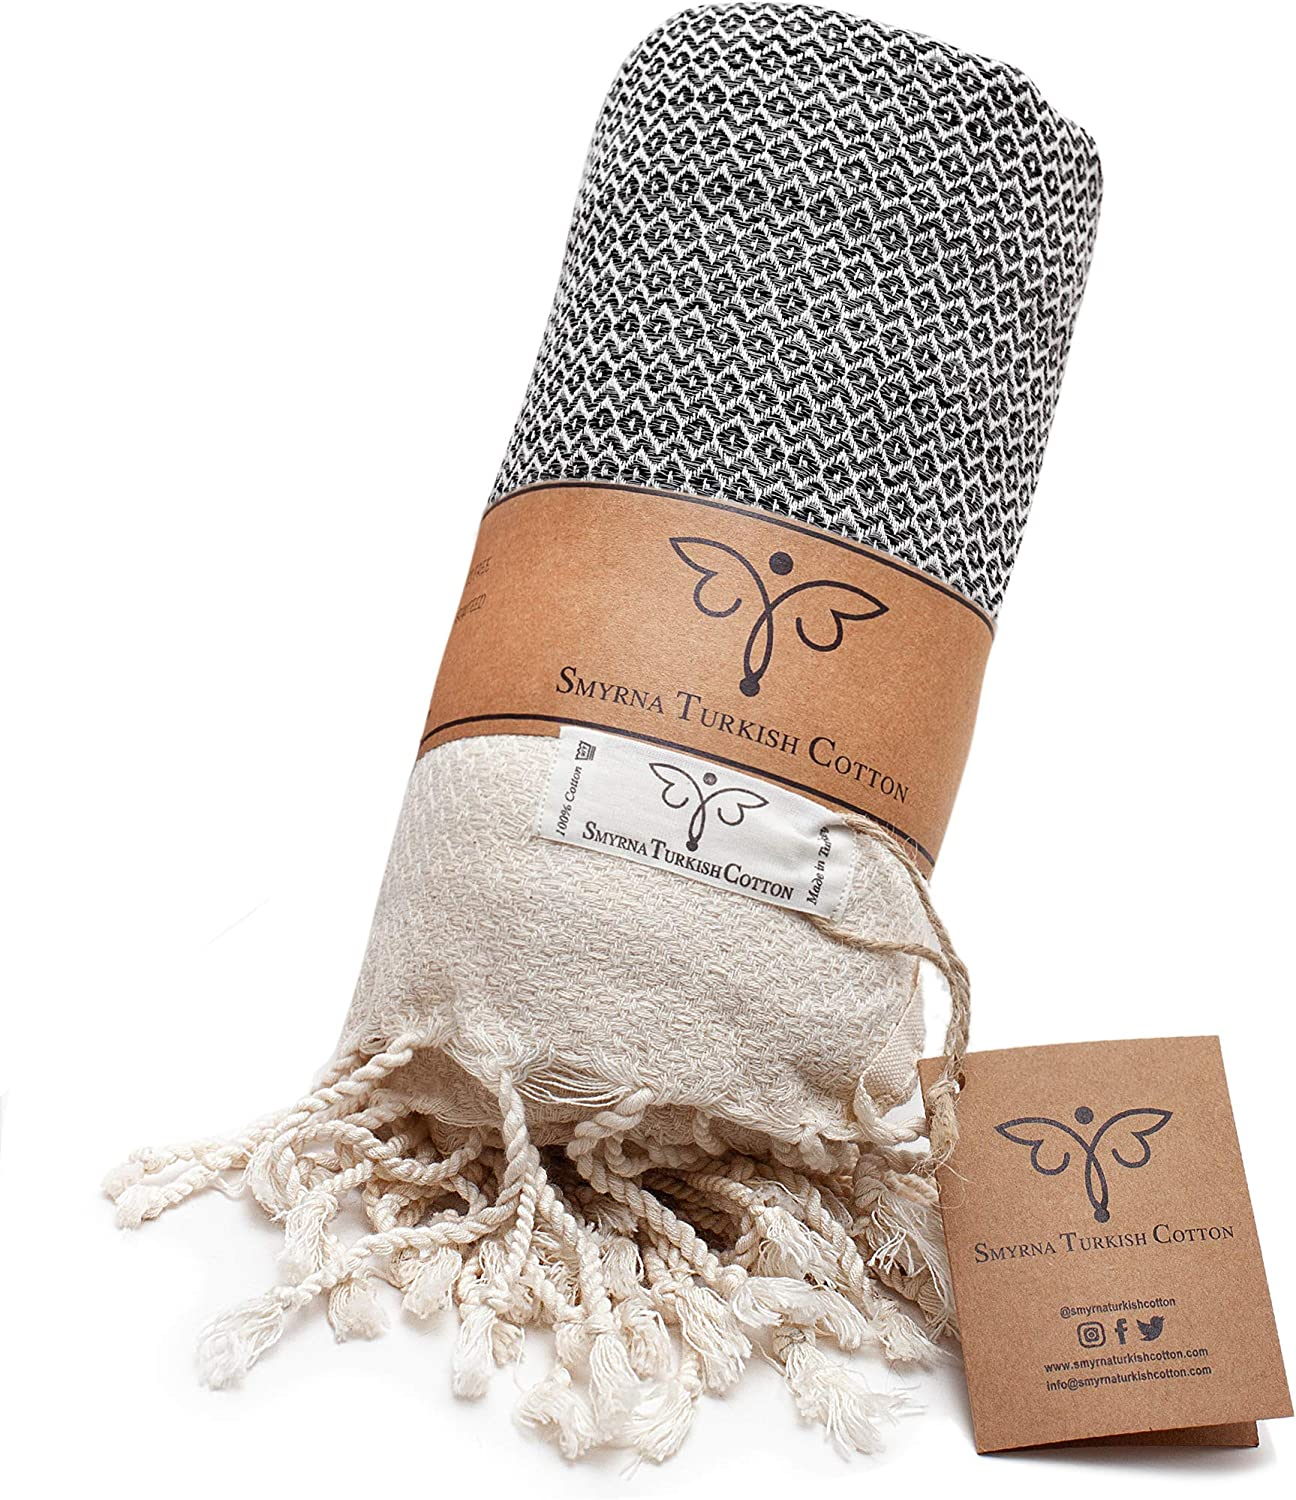 Smyrna Original Turkish Throw Blanket | 100% Cotton, 50 x 60 Inches | Vintage Decorative Boho Throw Blankets for Couch, Sofa, Bed, Farmhouse and Home Decor | Lightweight and Super Soft (Dark Gray)